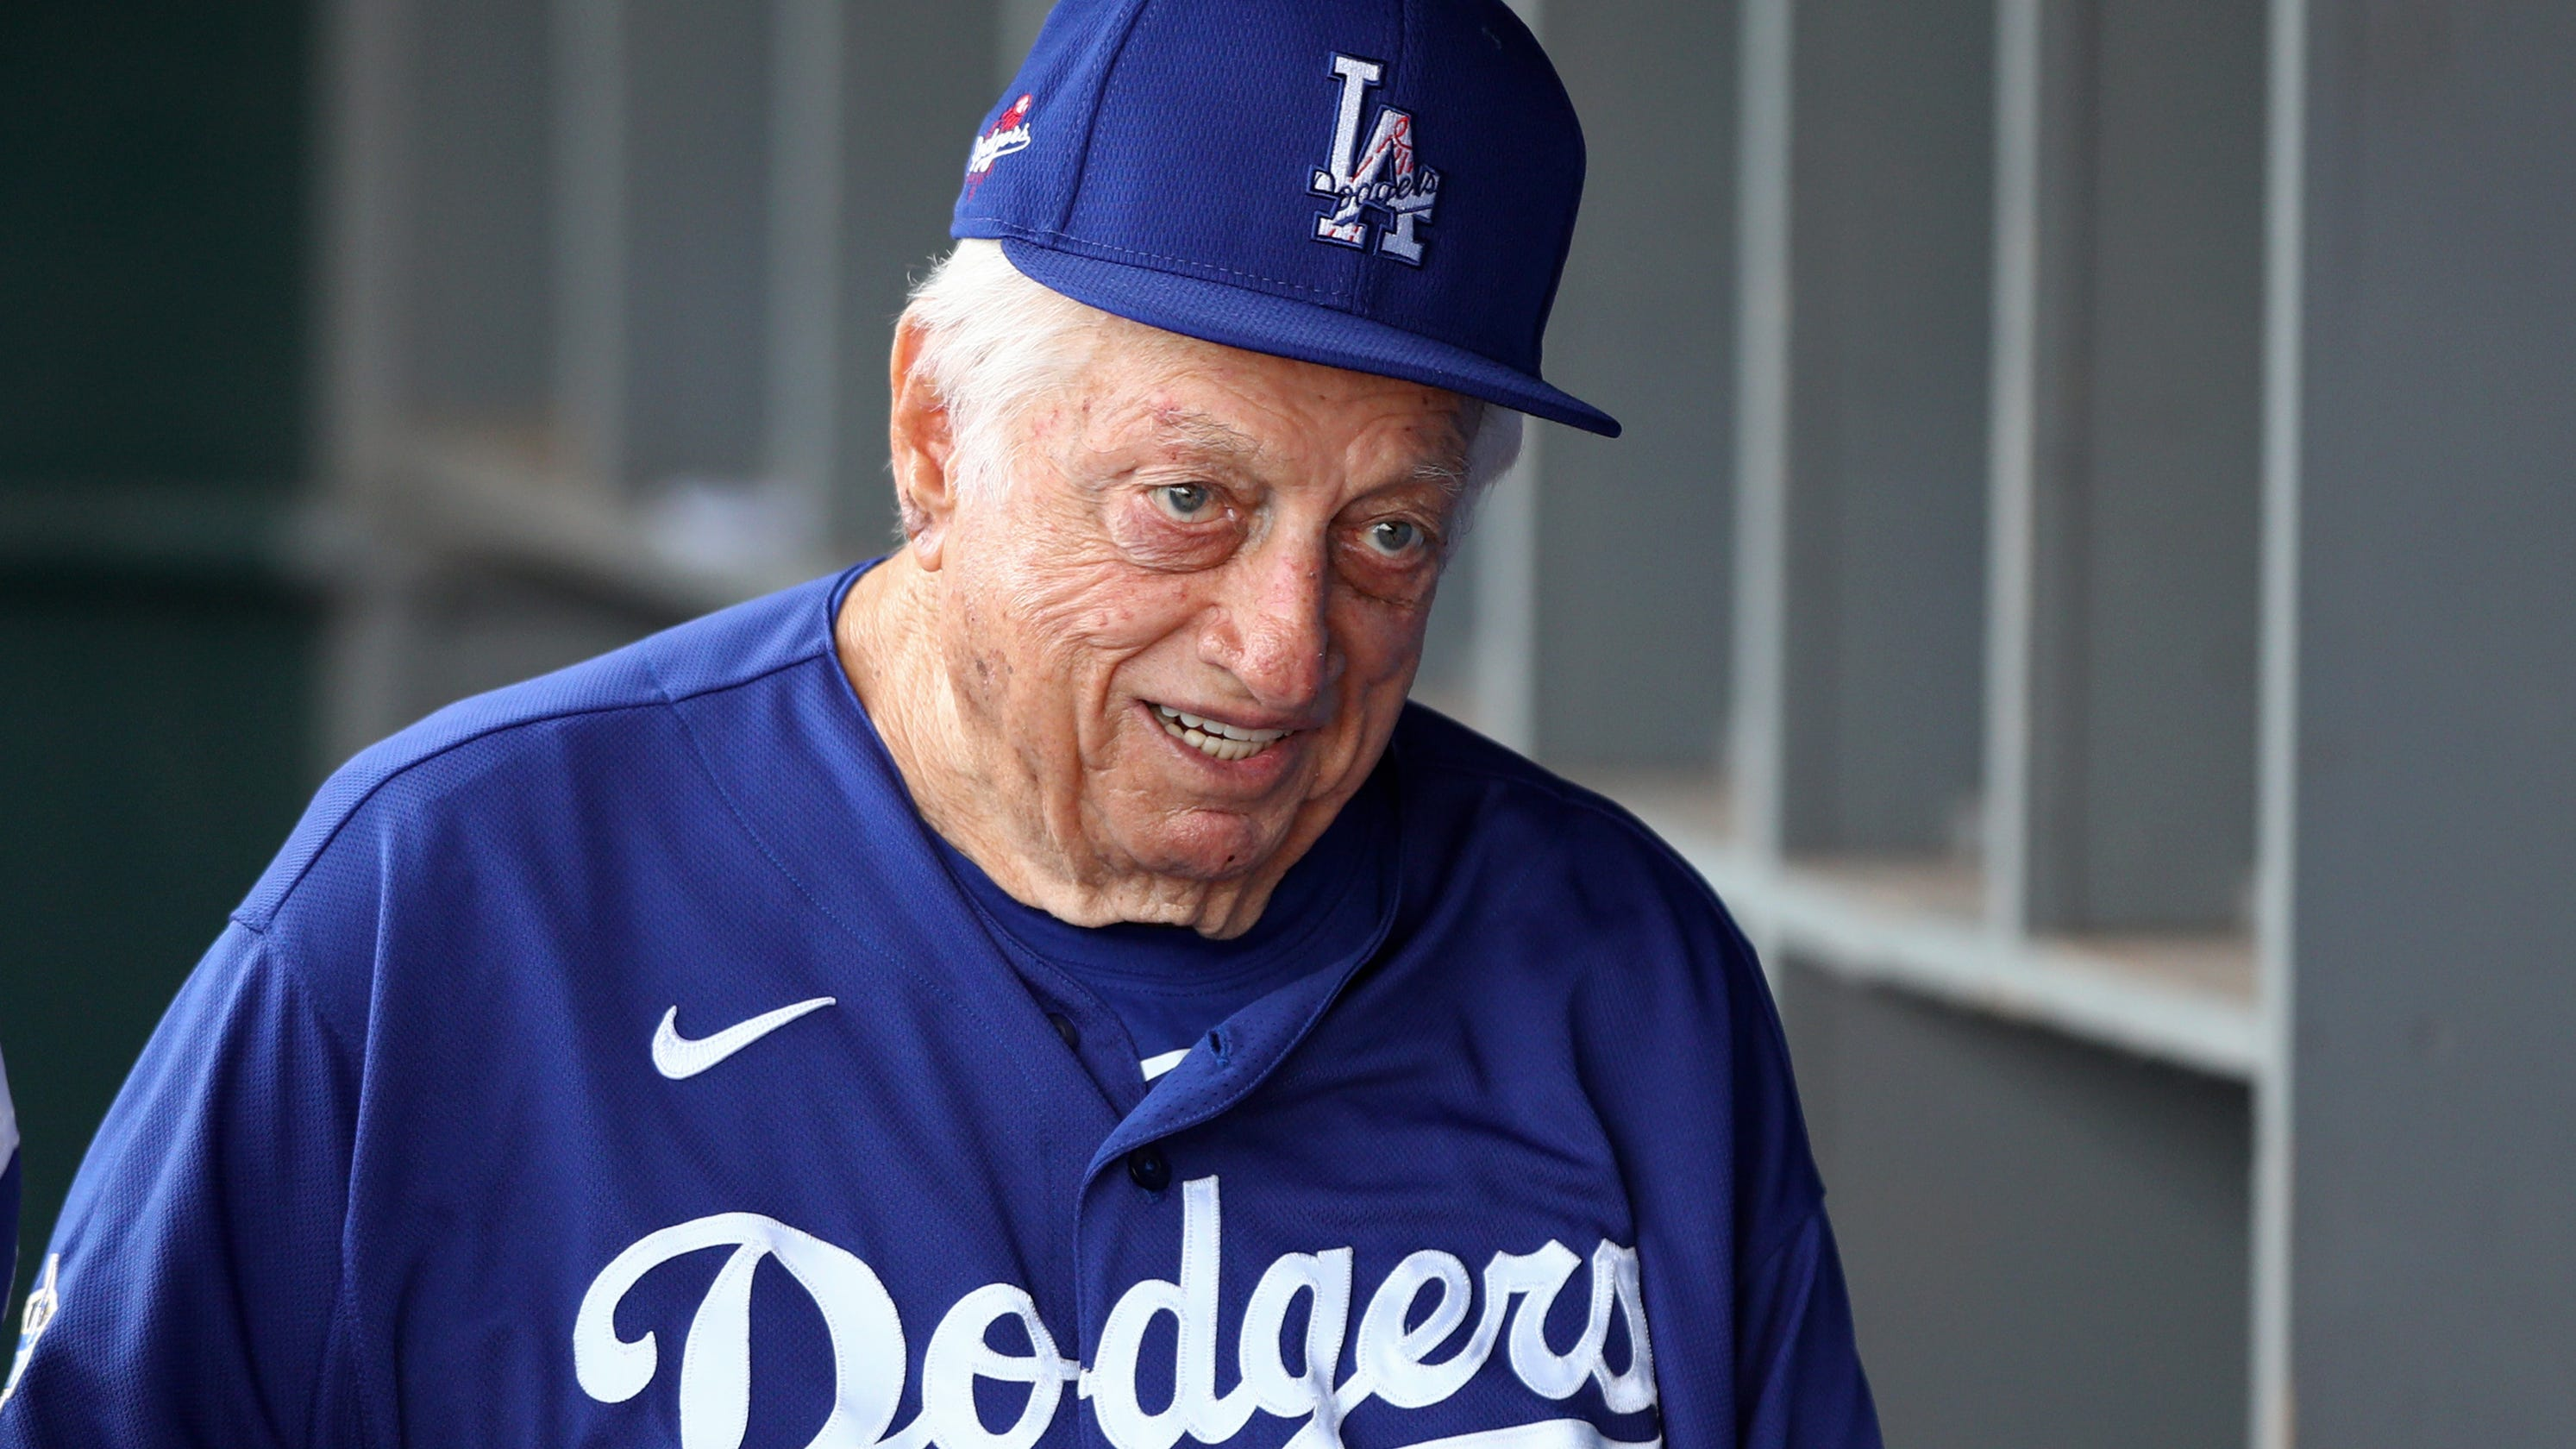 Hall of Fame manager and Los Angeles Dodger icon Tommy Lasorda dies at 93